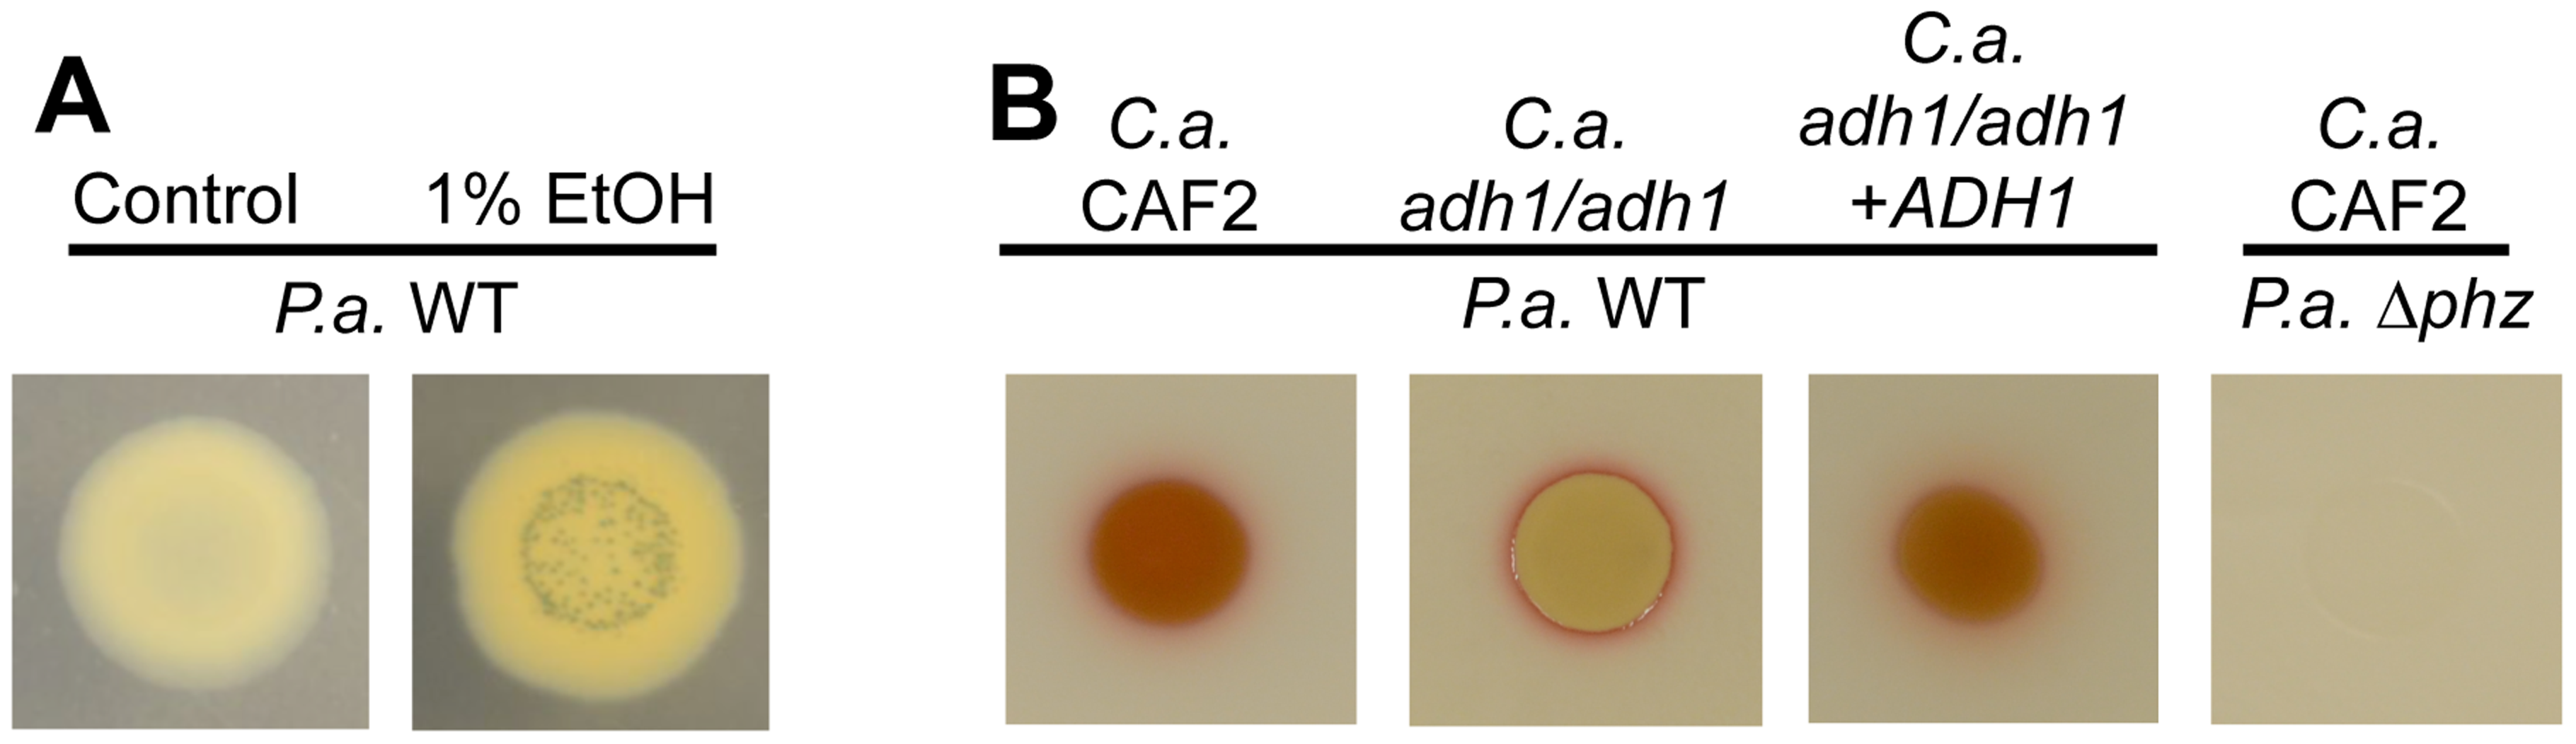 Ethanol leads to higher levels of PCN crystal formation and 5MPCA derivatives.